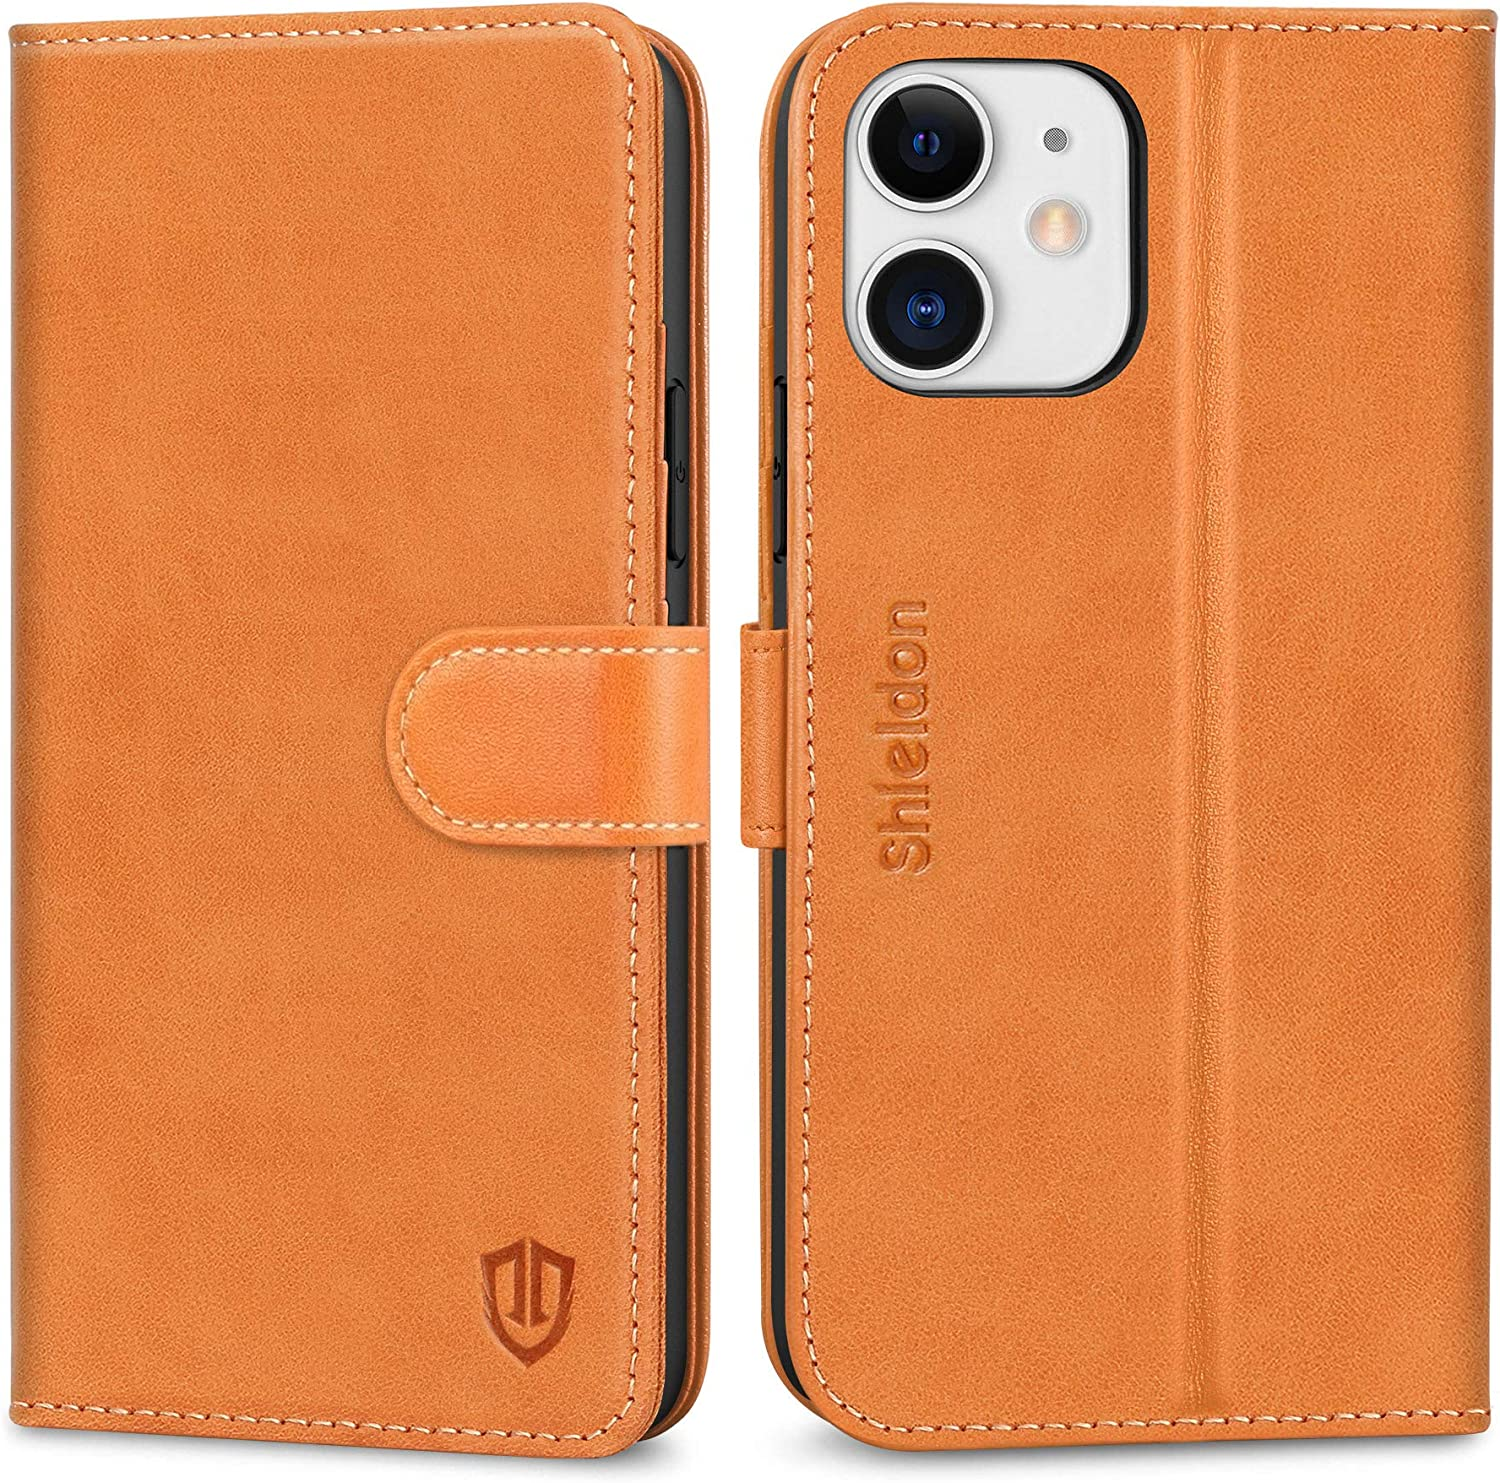 SHIELDON Case for iPhone 12/12 Pro, Genuine Leather Wallet Case with Kickstand RFID Blocking Card Holder Magnetic Shockproof Case Compatible with iPhone 12/12 Pro 6.1